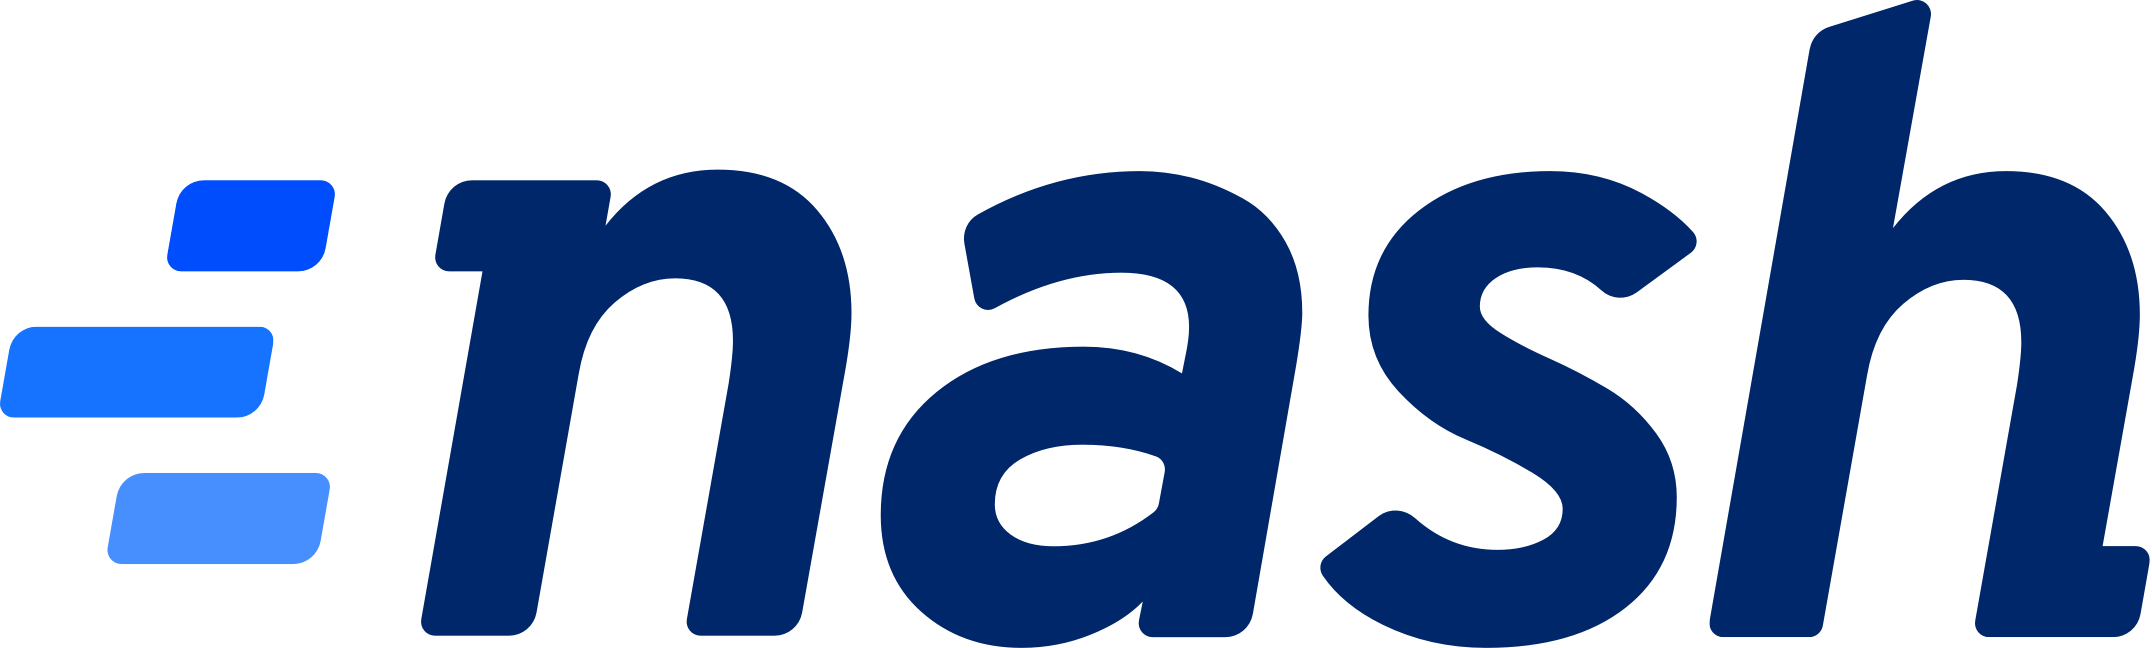 Nash-logo_dark